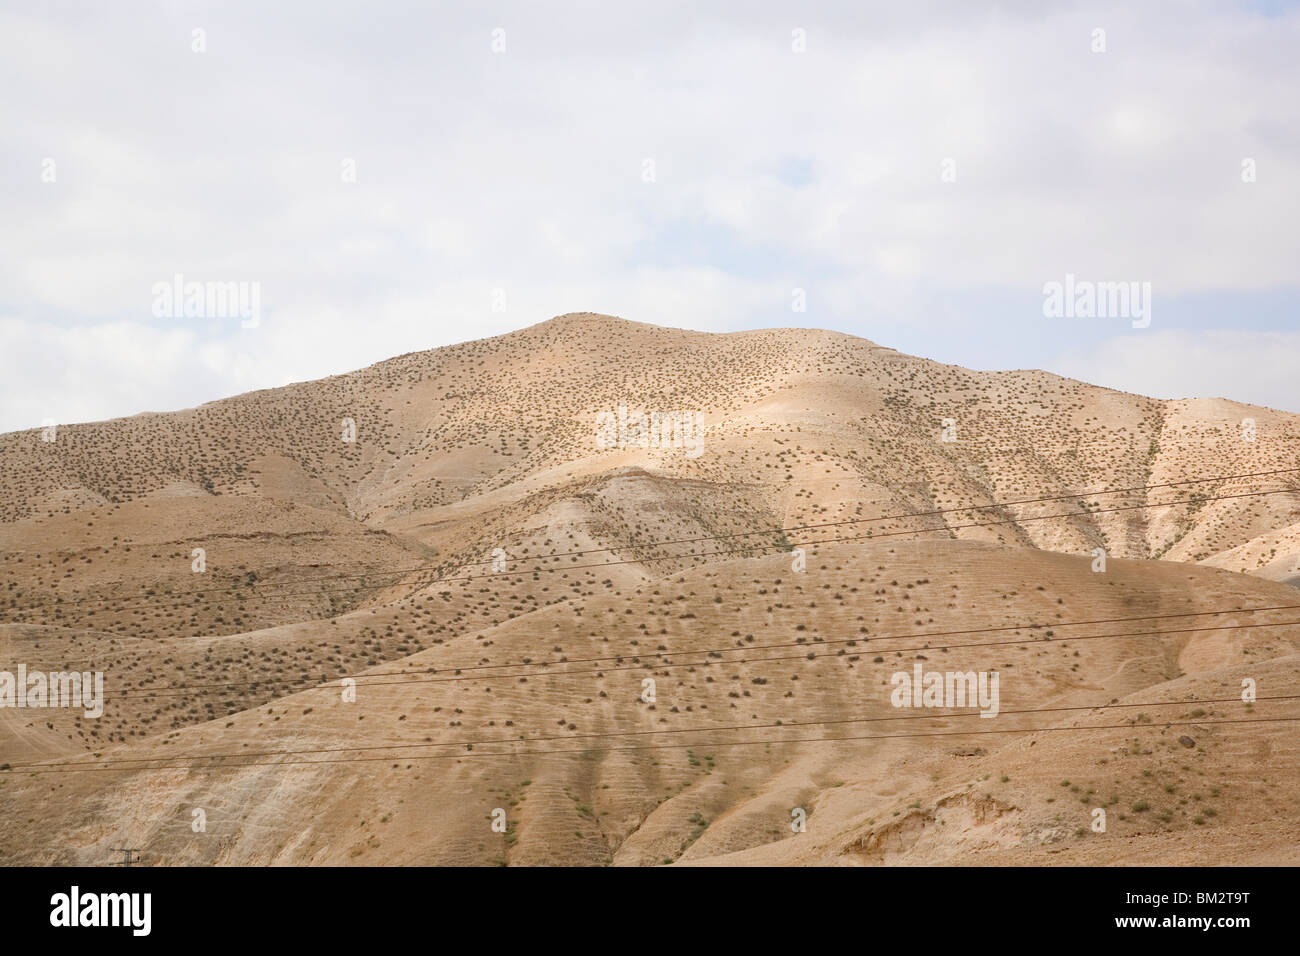 Valley Of Jericho - Israel - Stock Image